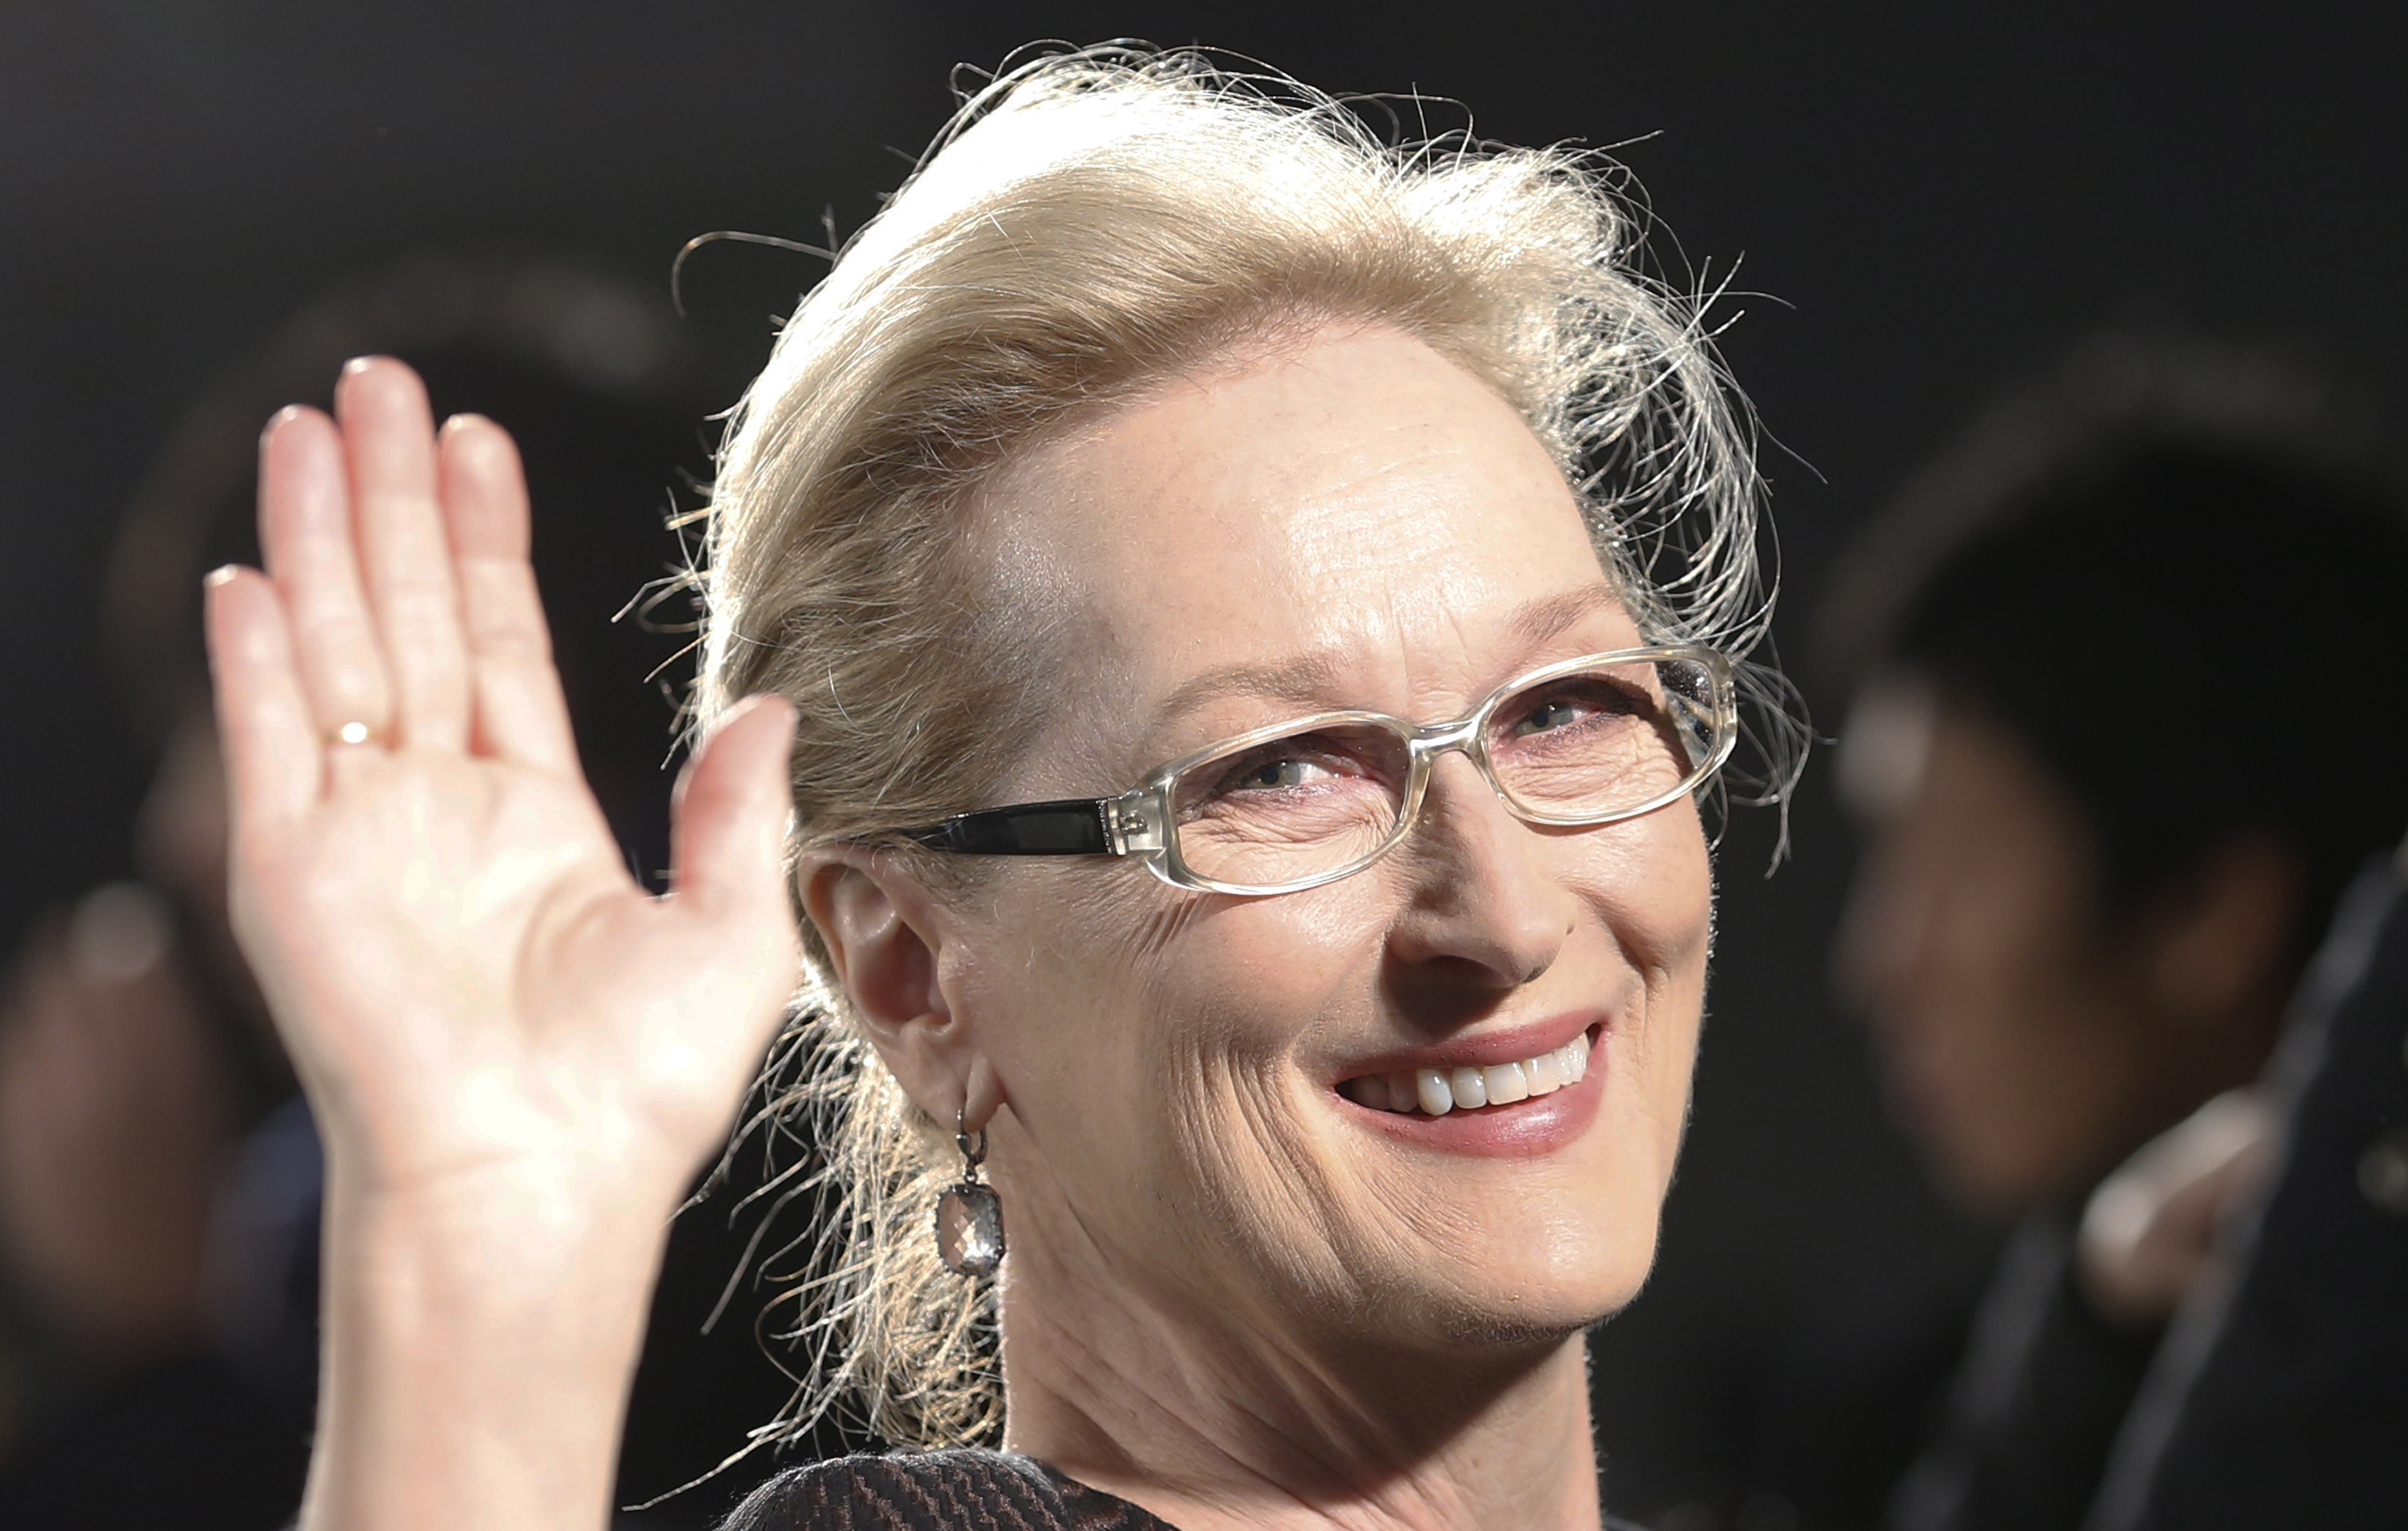 """Meryl Streep waves for photographers during the Japan premiere of """"Into the Woods"""" in Tokyo Wednesday, March 4, 2015. (AP Photo/Shizuo Kambayashi)"""